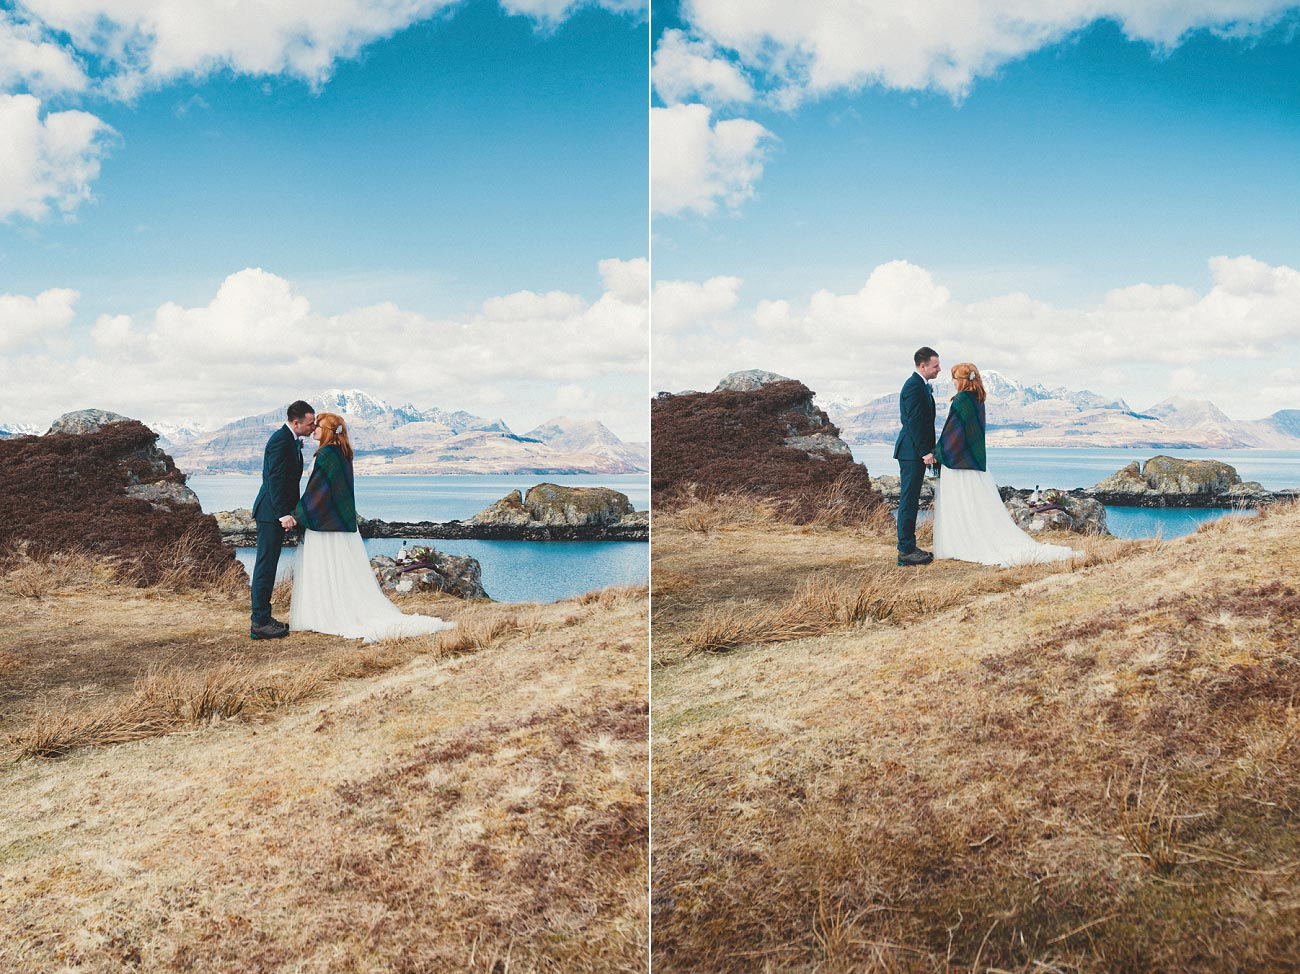 isle of skye elopement wedding photographer scotland dunscaith castle rj 0020